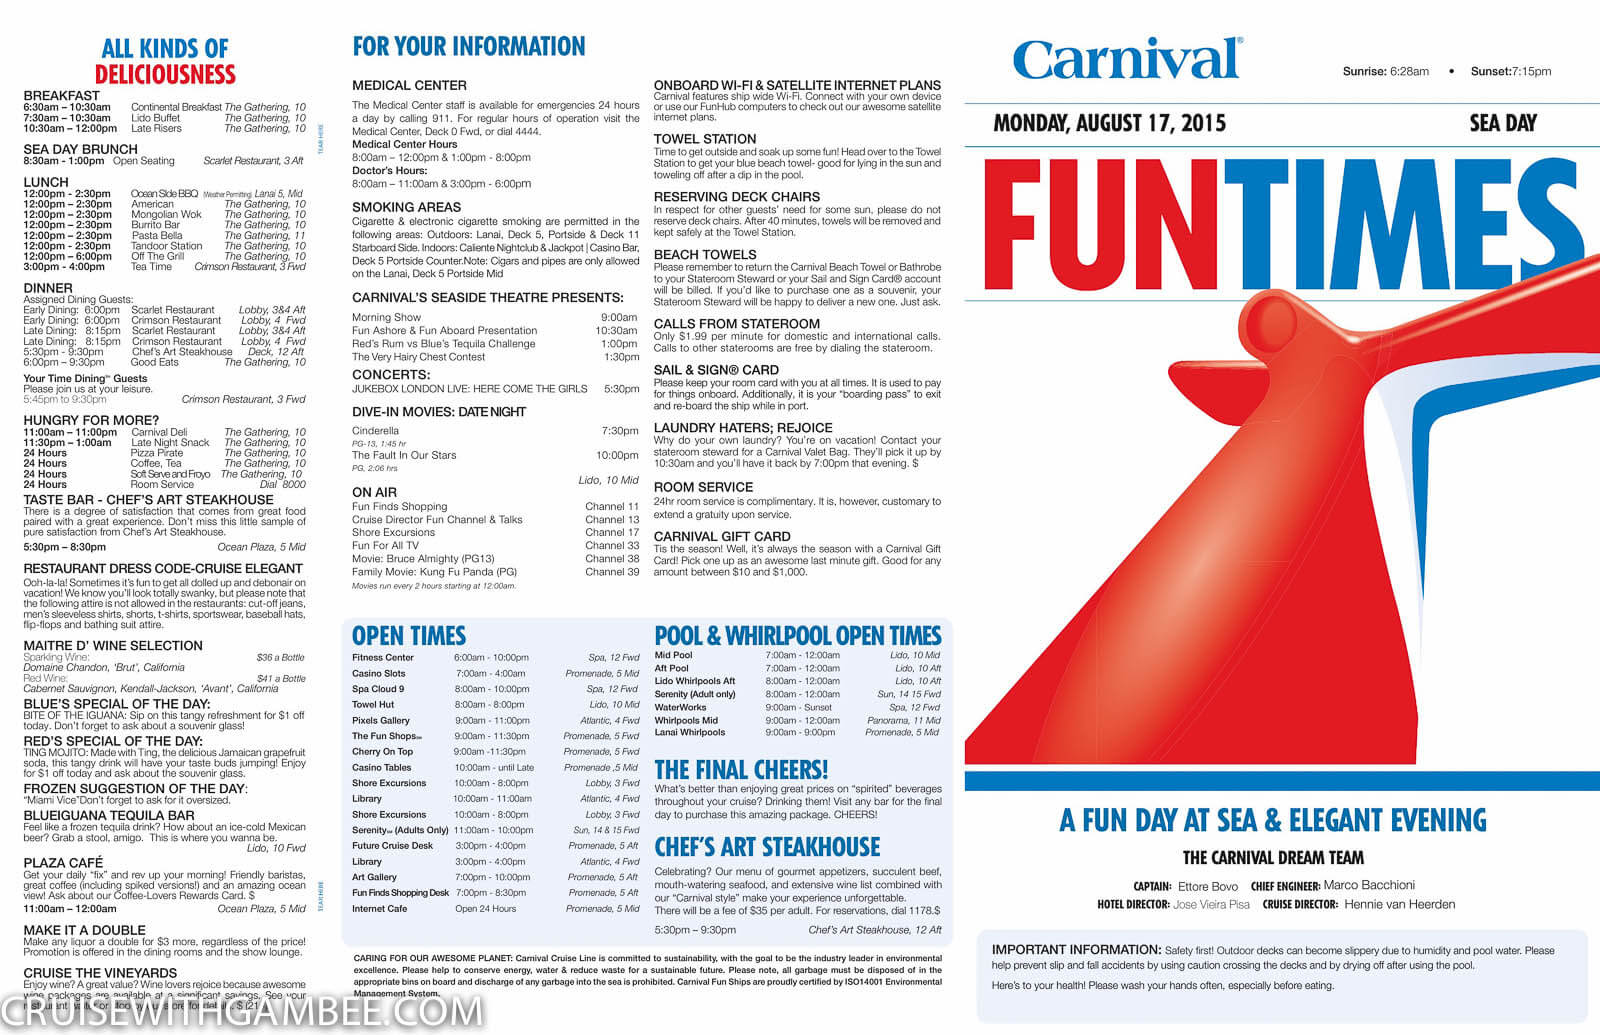 Carnival Dream Funtimes-3